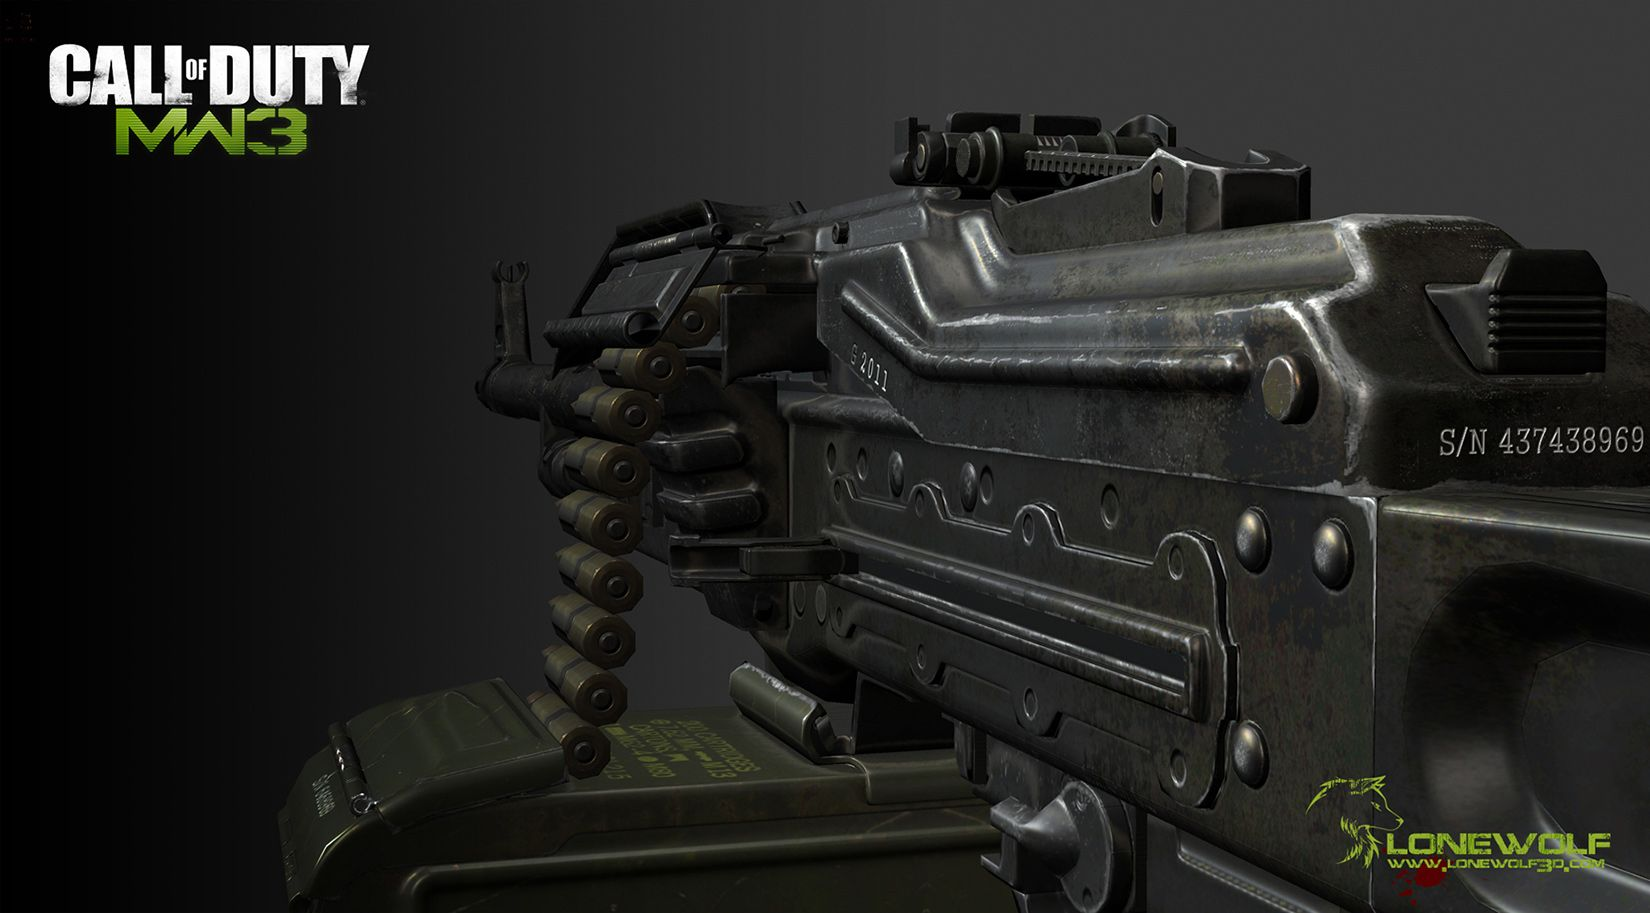 Weapons – Call of Duty: MW3   Weapons   Weapons, Call of